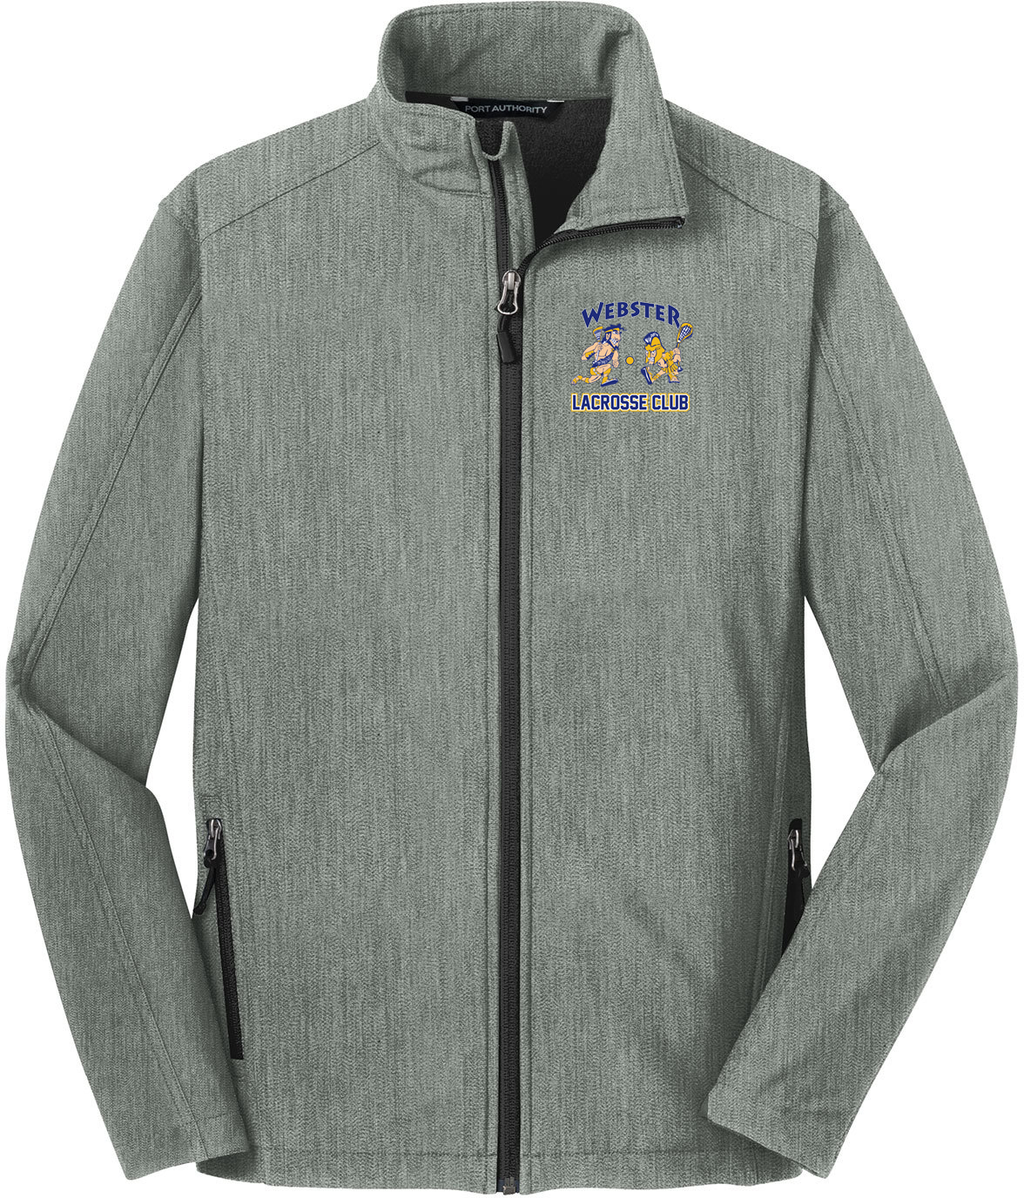 Webster Lacrosse Light Grey Soft Shell Jacket